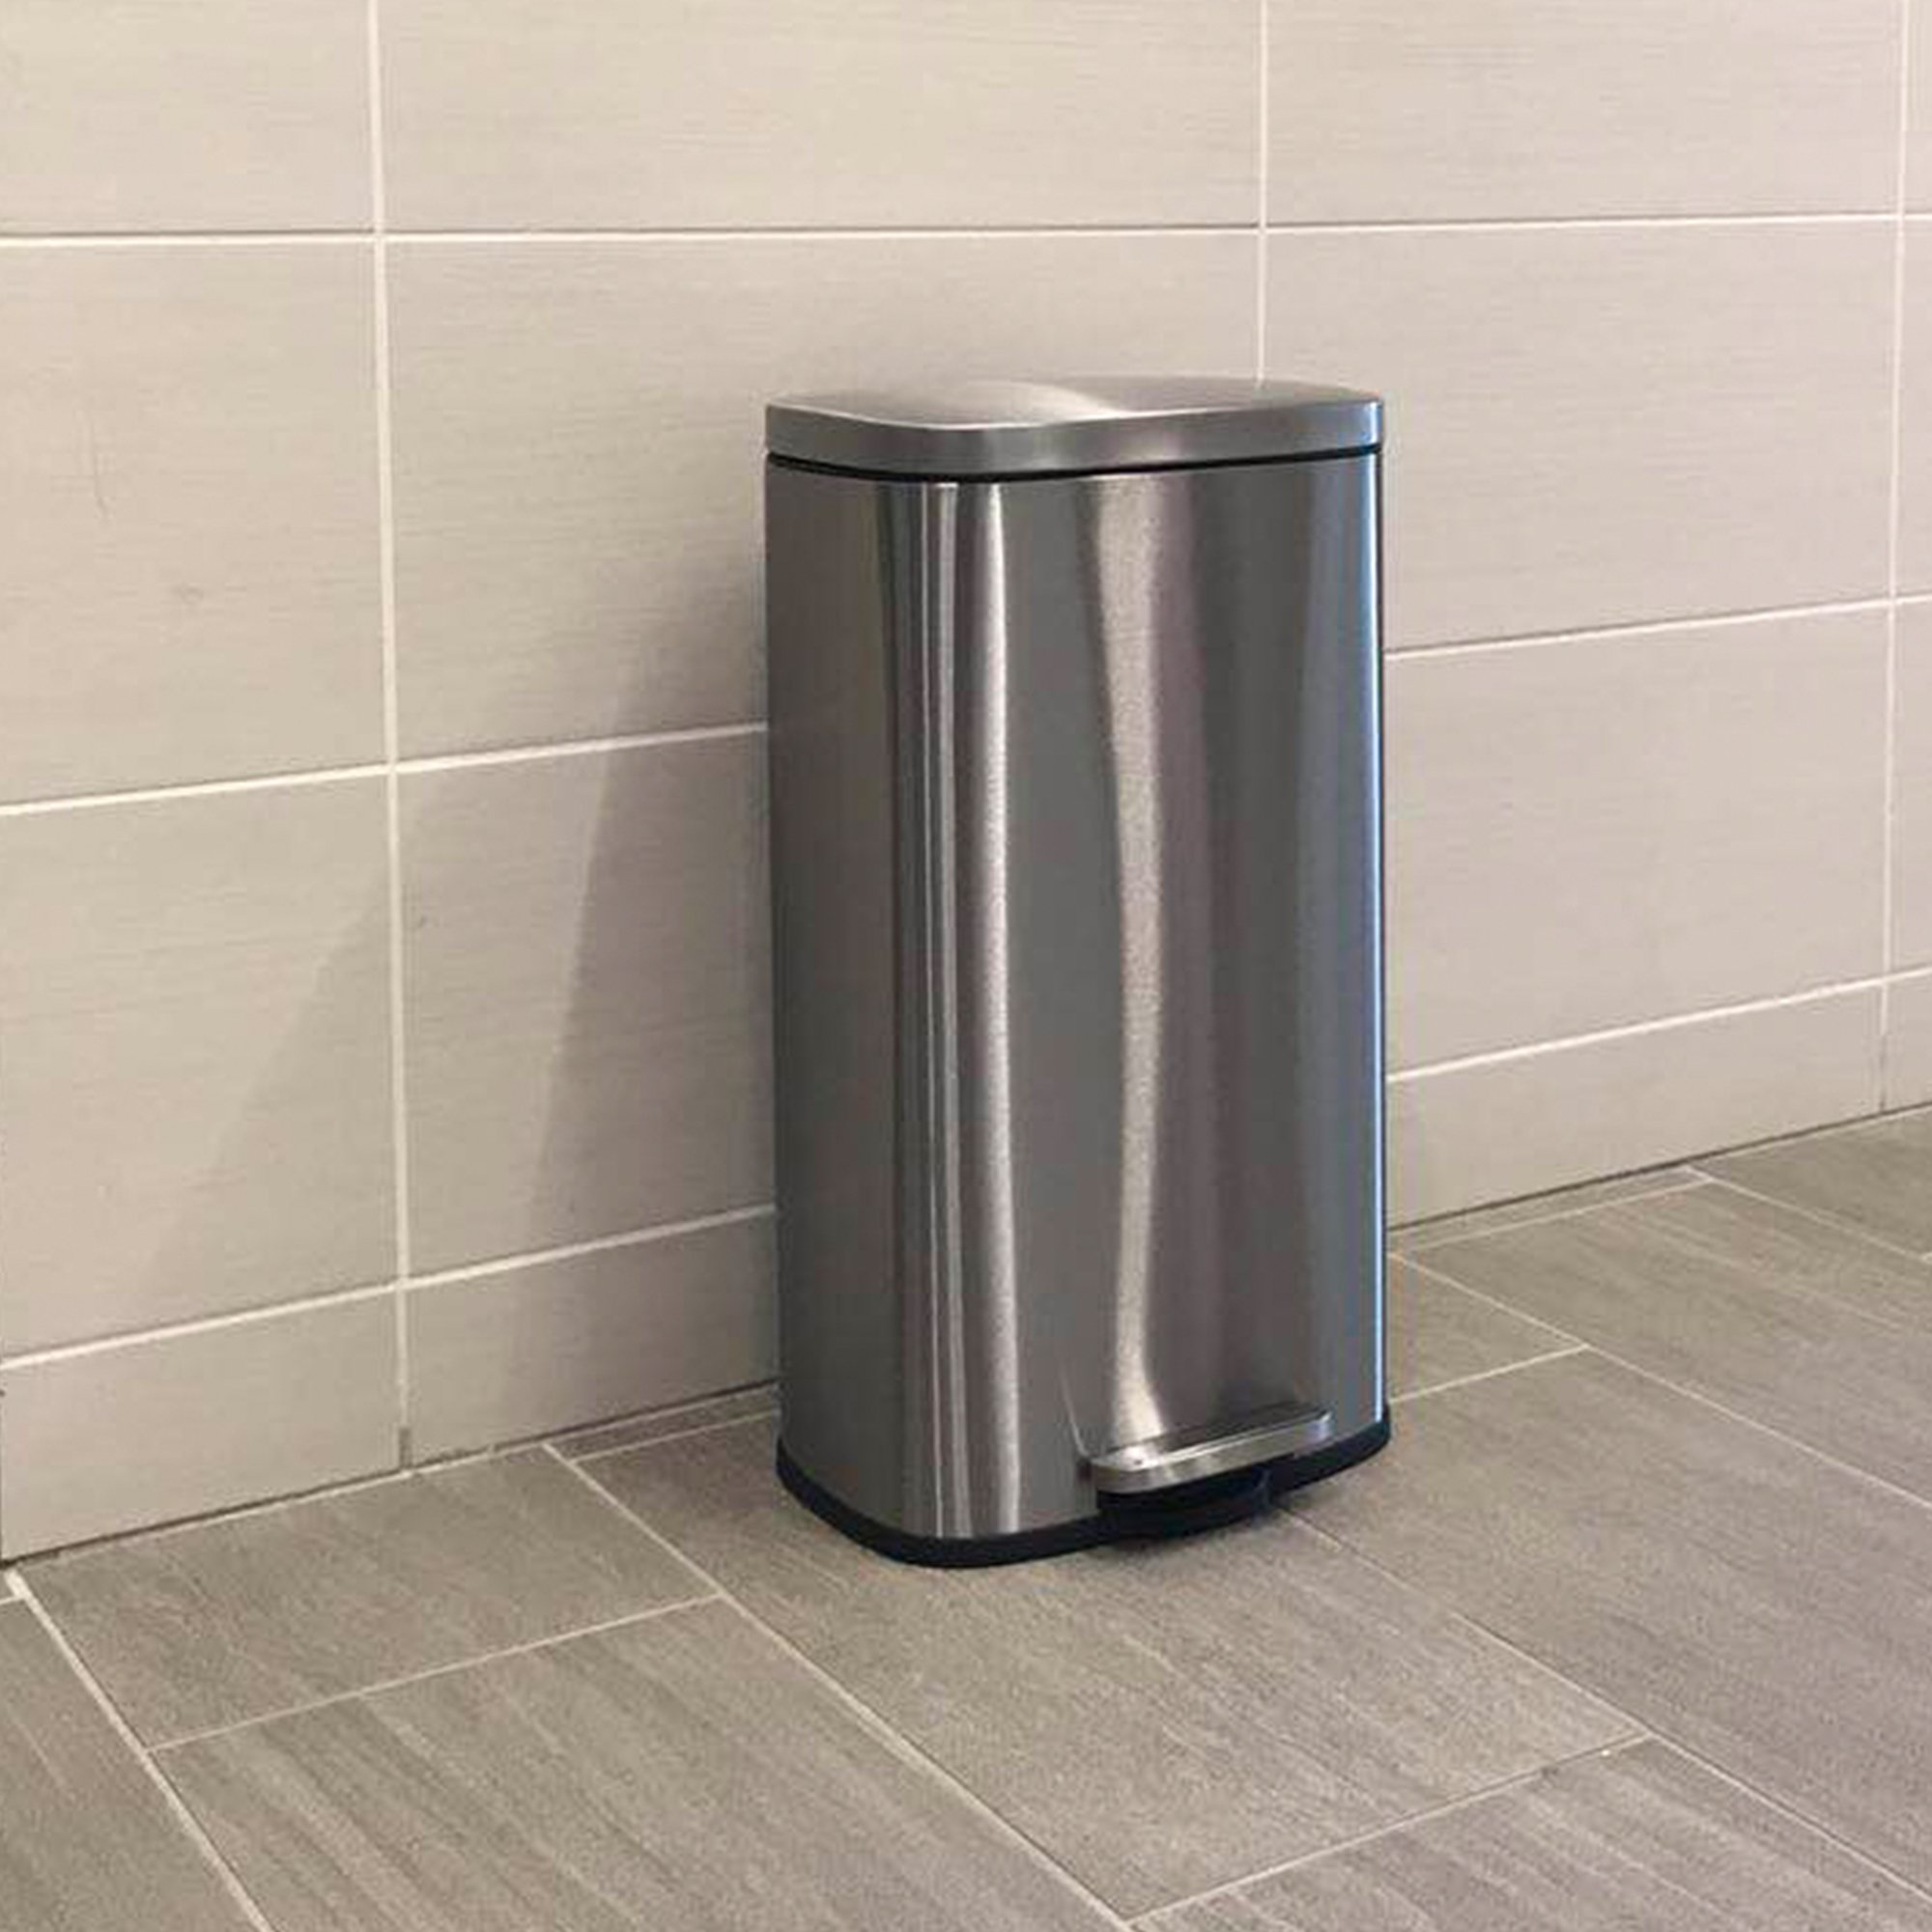 iTouchless SoftStep 8 Gallon Stainless Steel Step Trash Can, 30 Liter Pedal Kitchen Trash Can Perfect for Office, Home and Kitchen by iTouchless (Image #6)